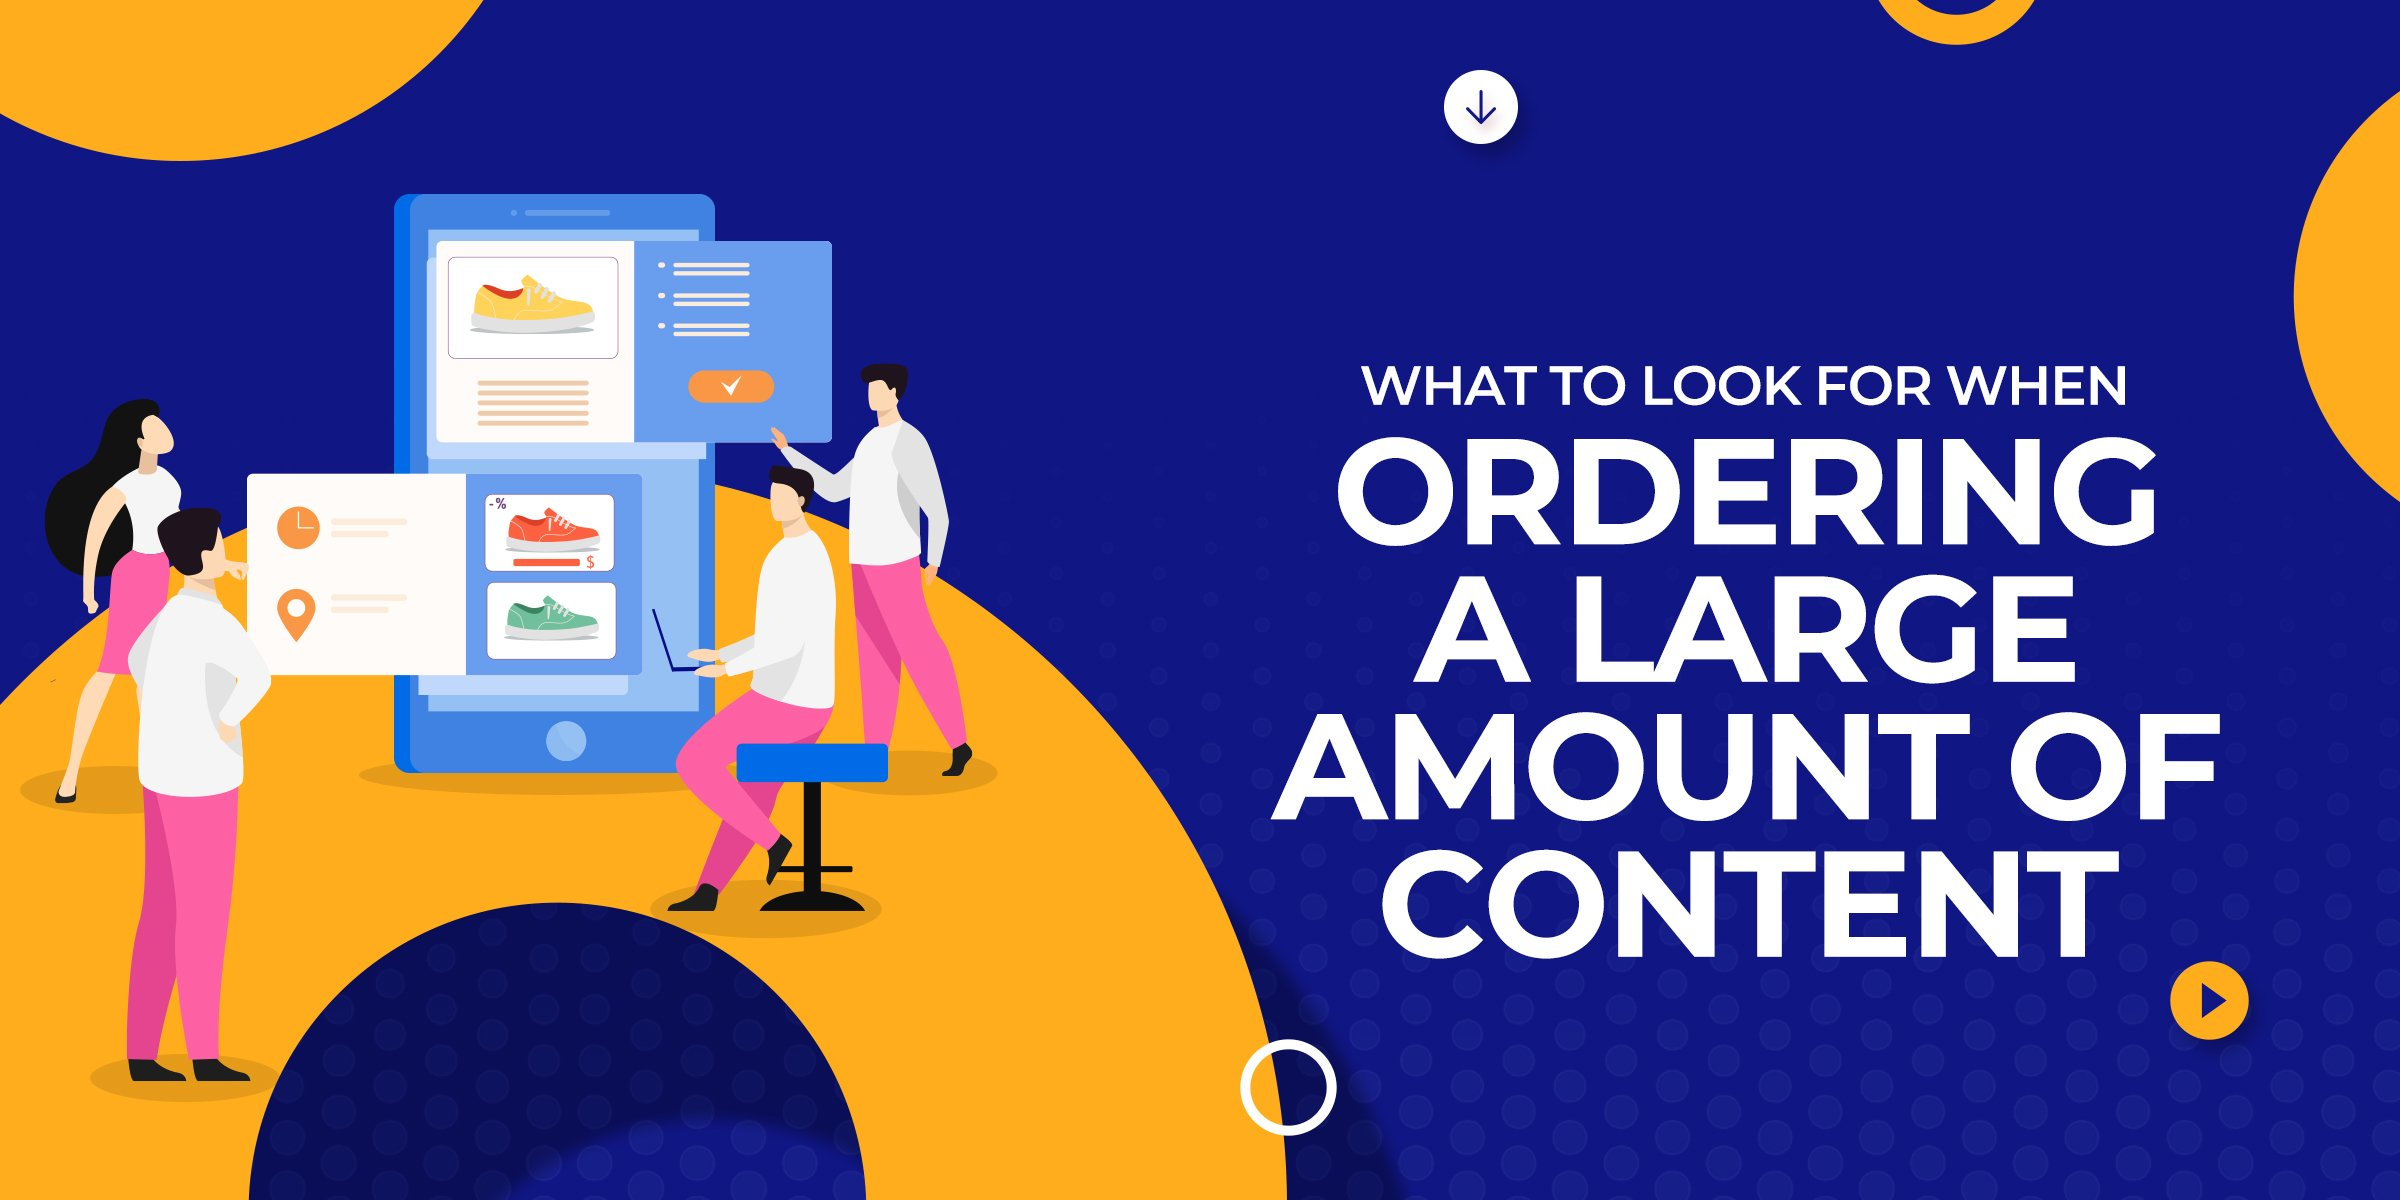 What to Look For When Ordering a Large Amount of Content